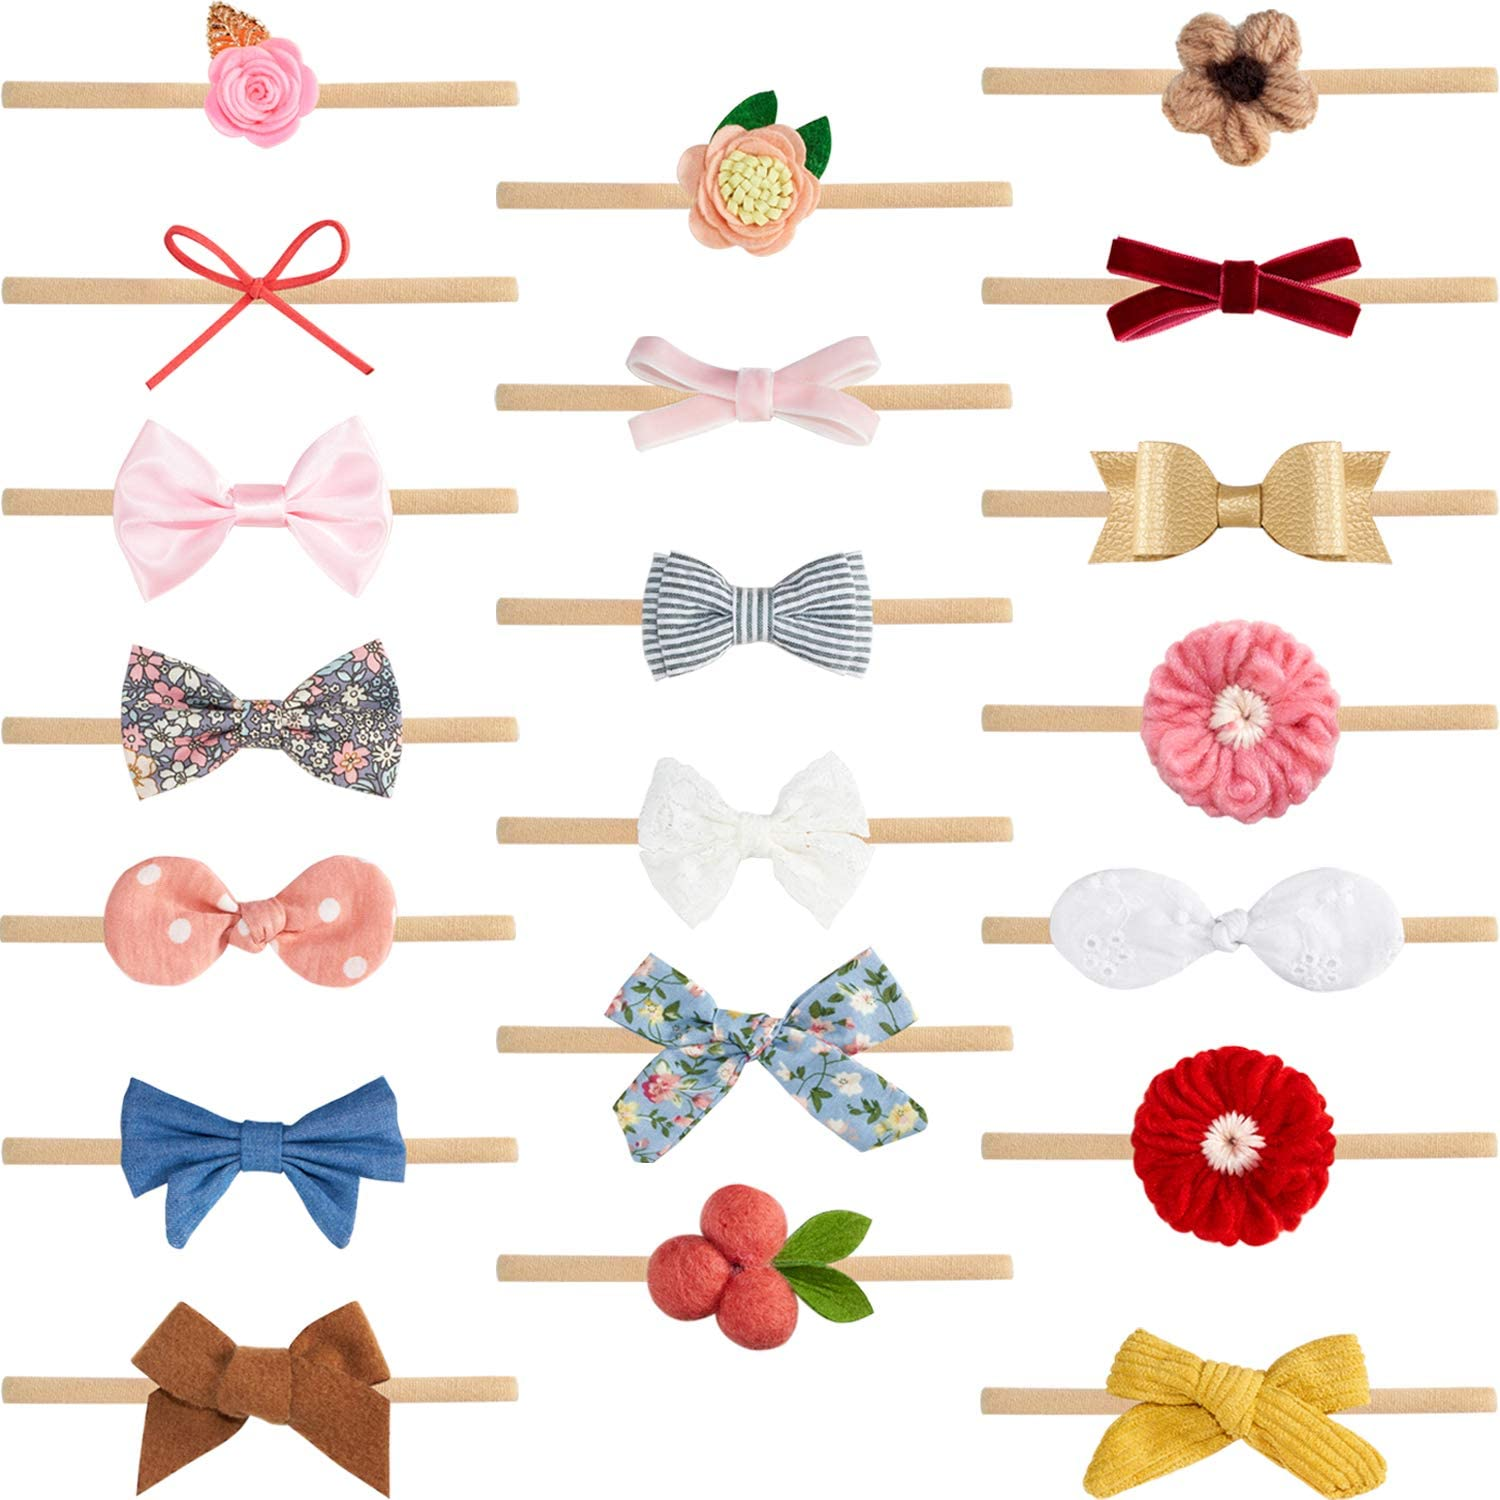 20 Pieces Baby Girl Headbands Nylon Hairbands Hair Accessories for Newborn Infant Toddlers Kids